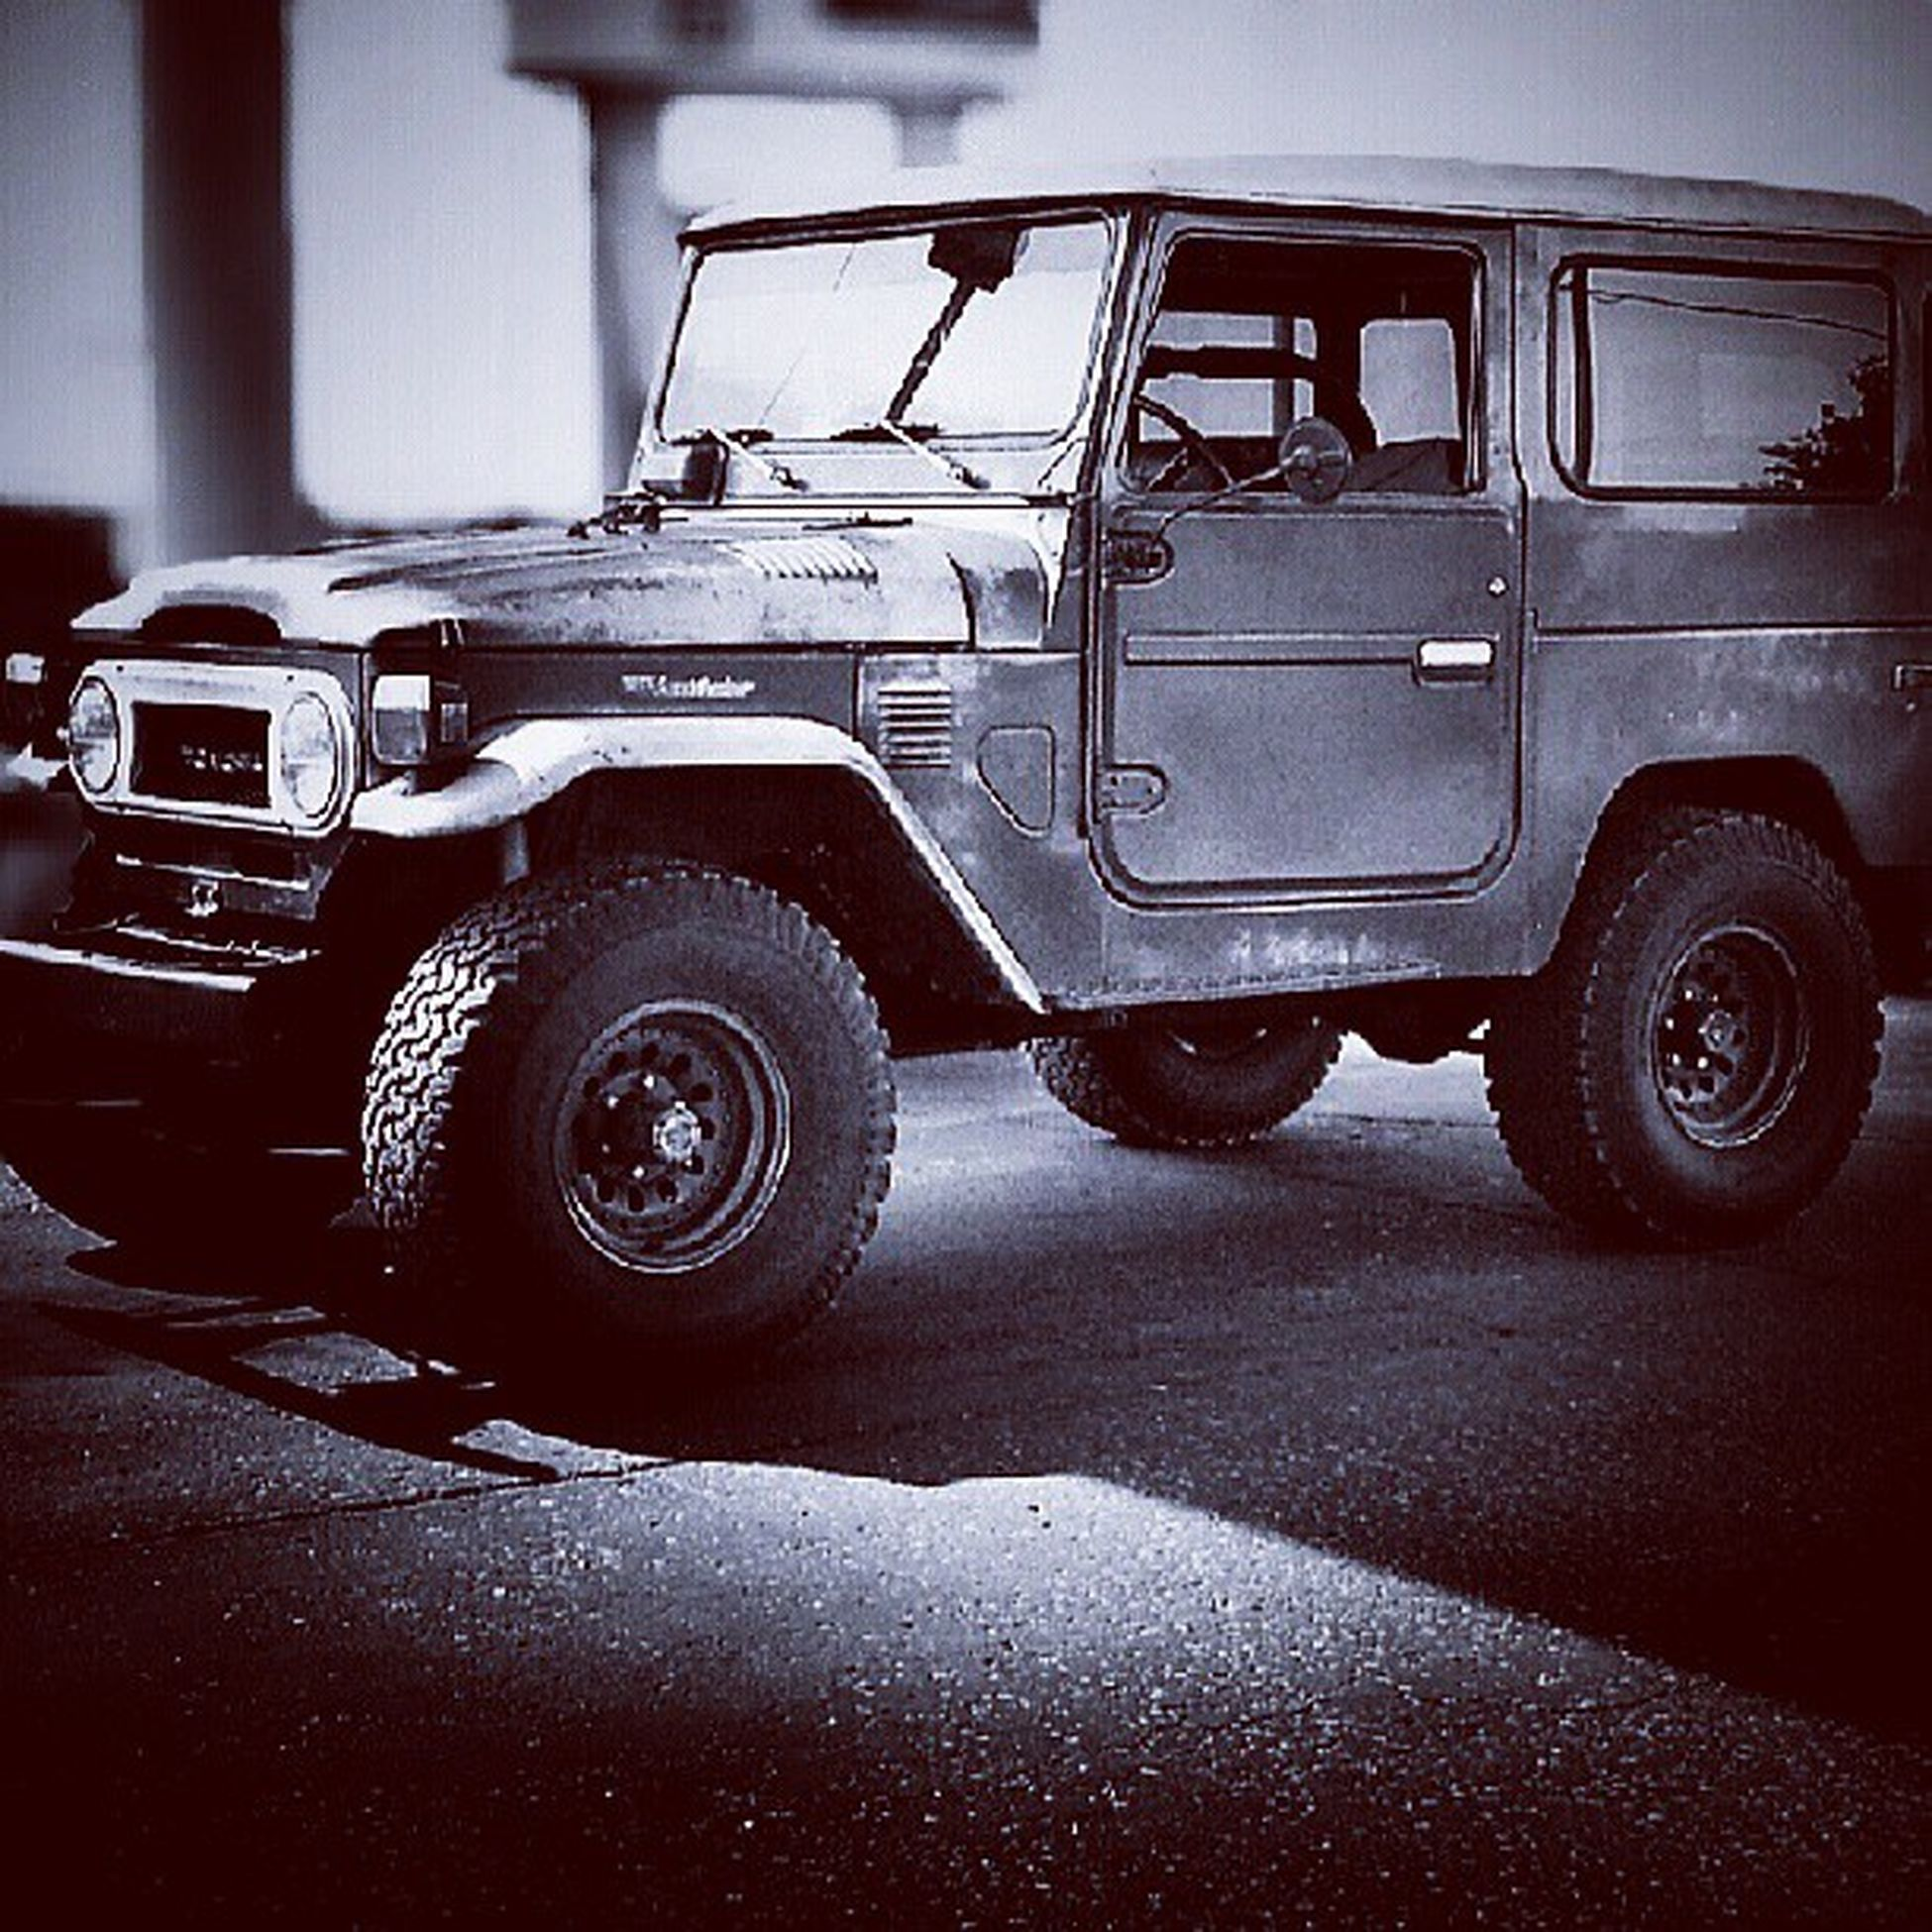 This is one beastly jeep! Jeep Cars Trucks Liftkit newMexico awesome super cool